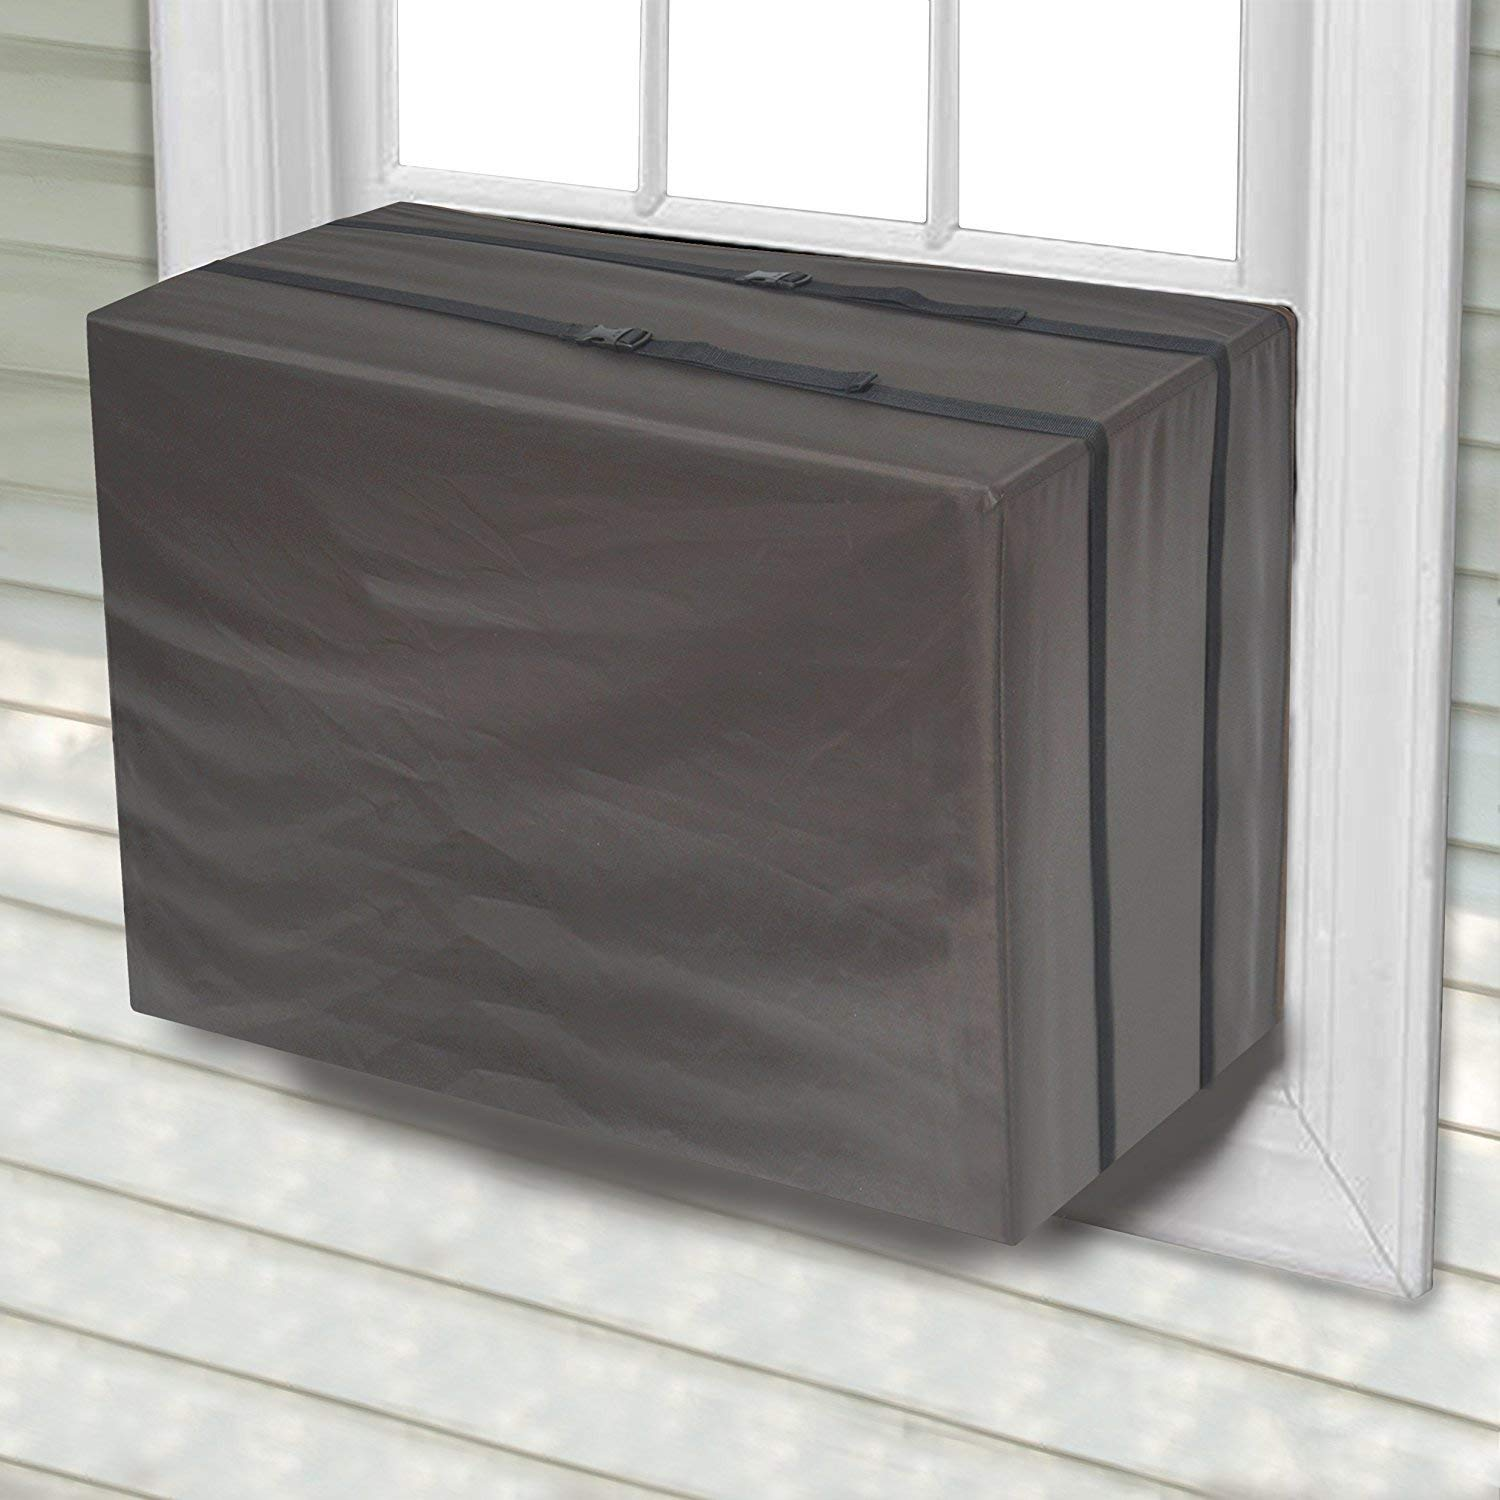 "Gizwise Outdoor Window Air Conditioner Cover Winter AC Unit Defender Bottom Covered (Large (27""W x 25""D x 19""H))"